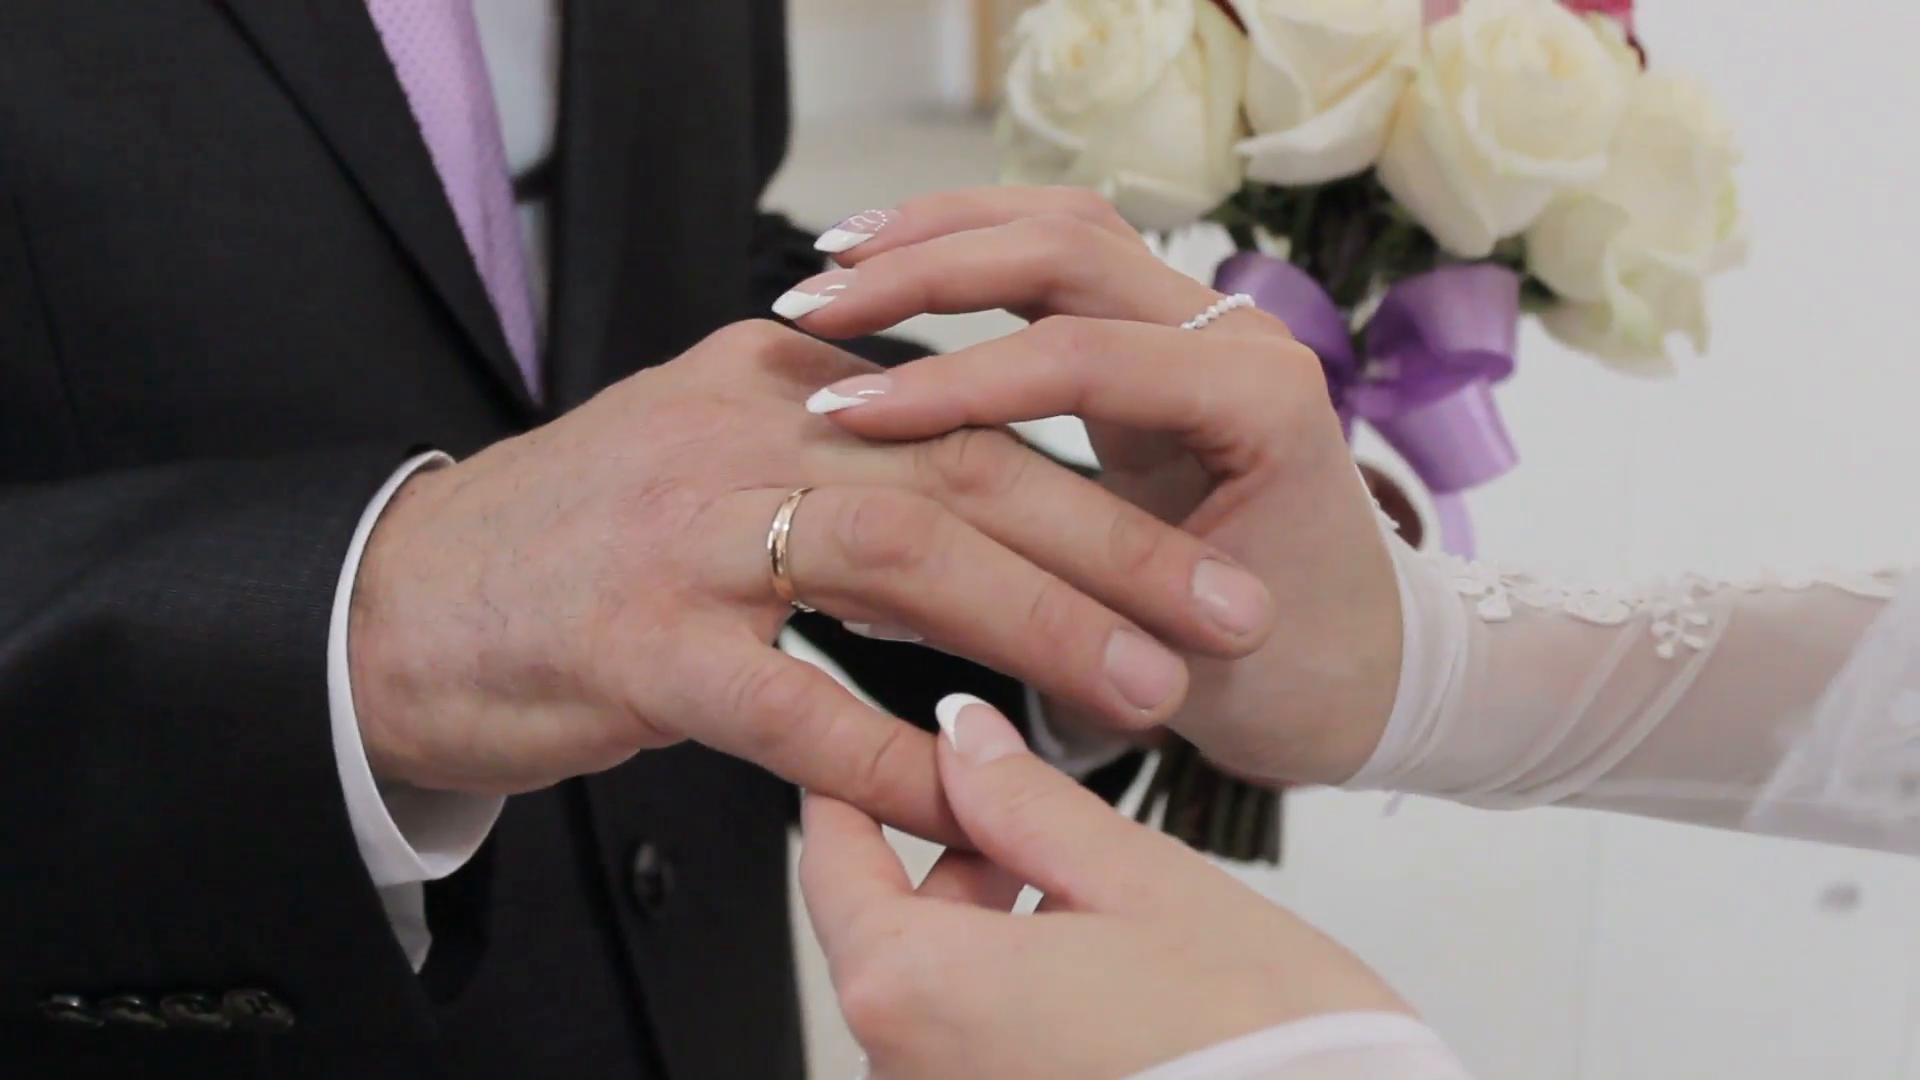 wedding rings exchanged between a bride and a groom, close up